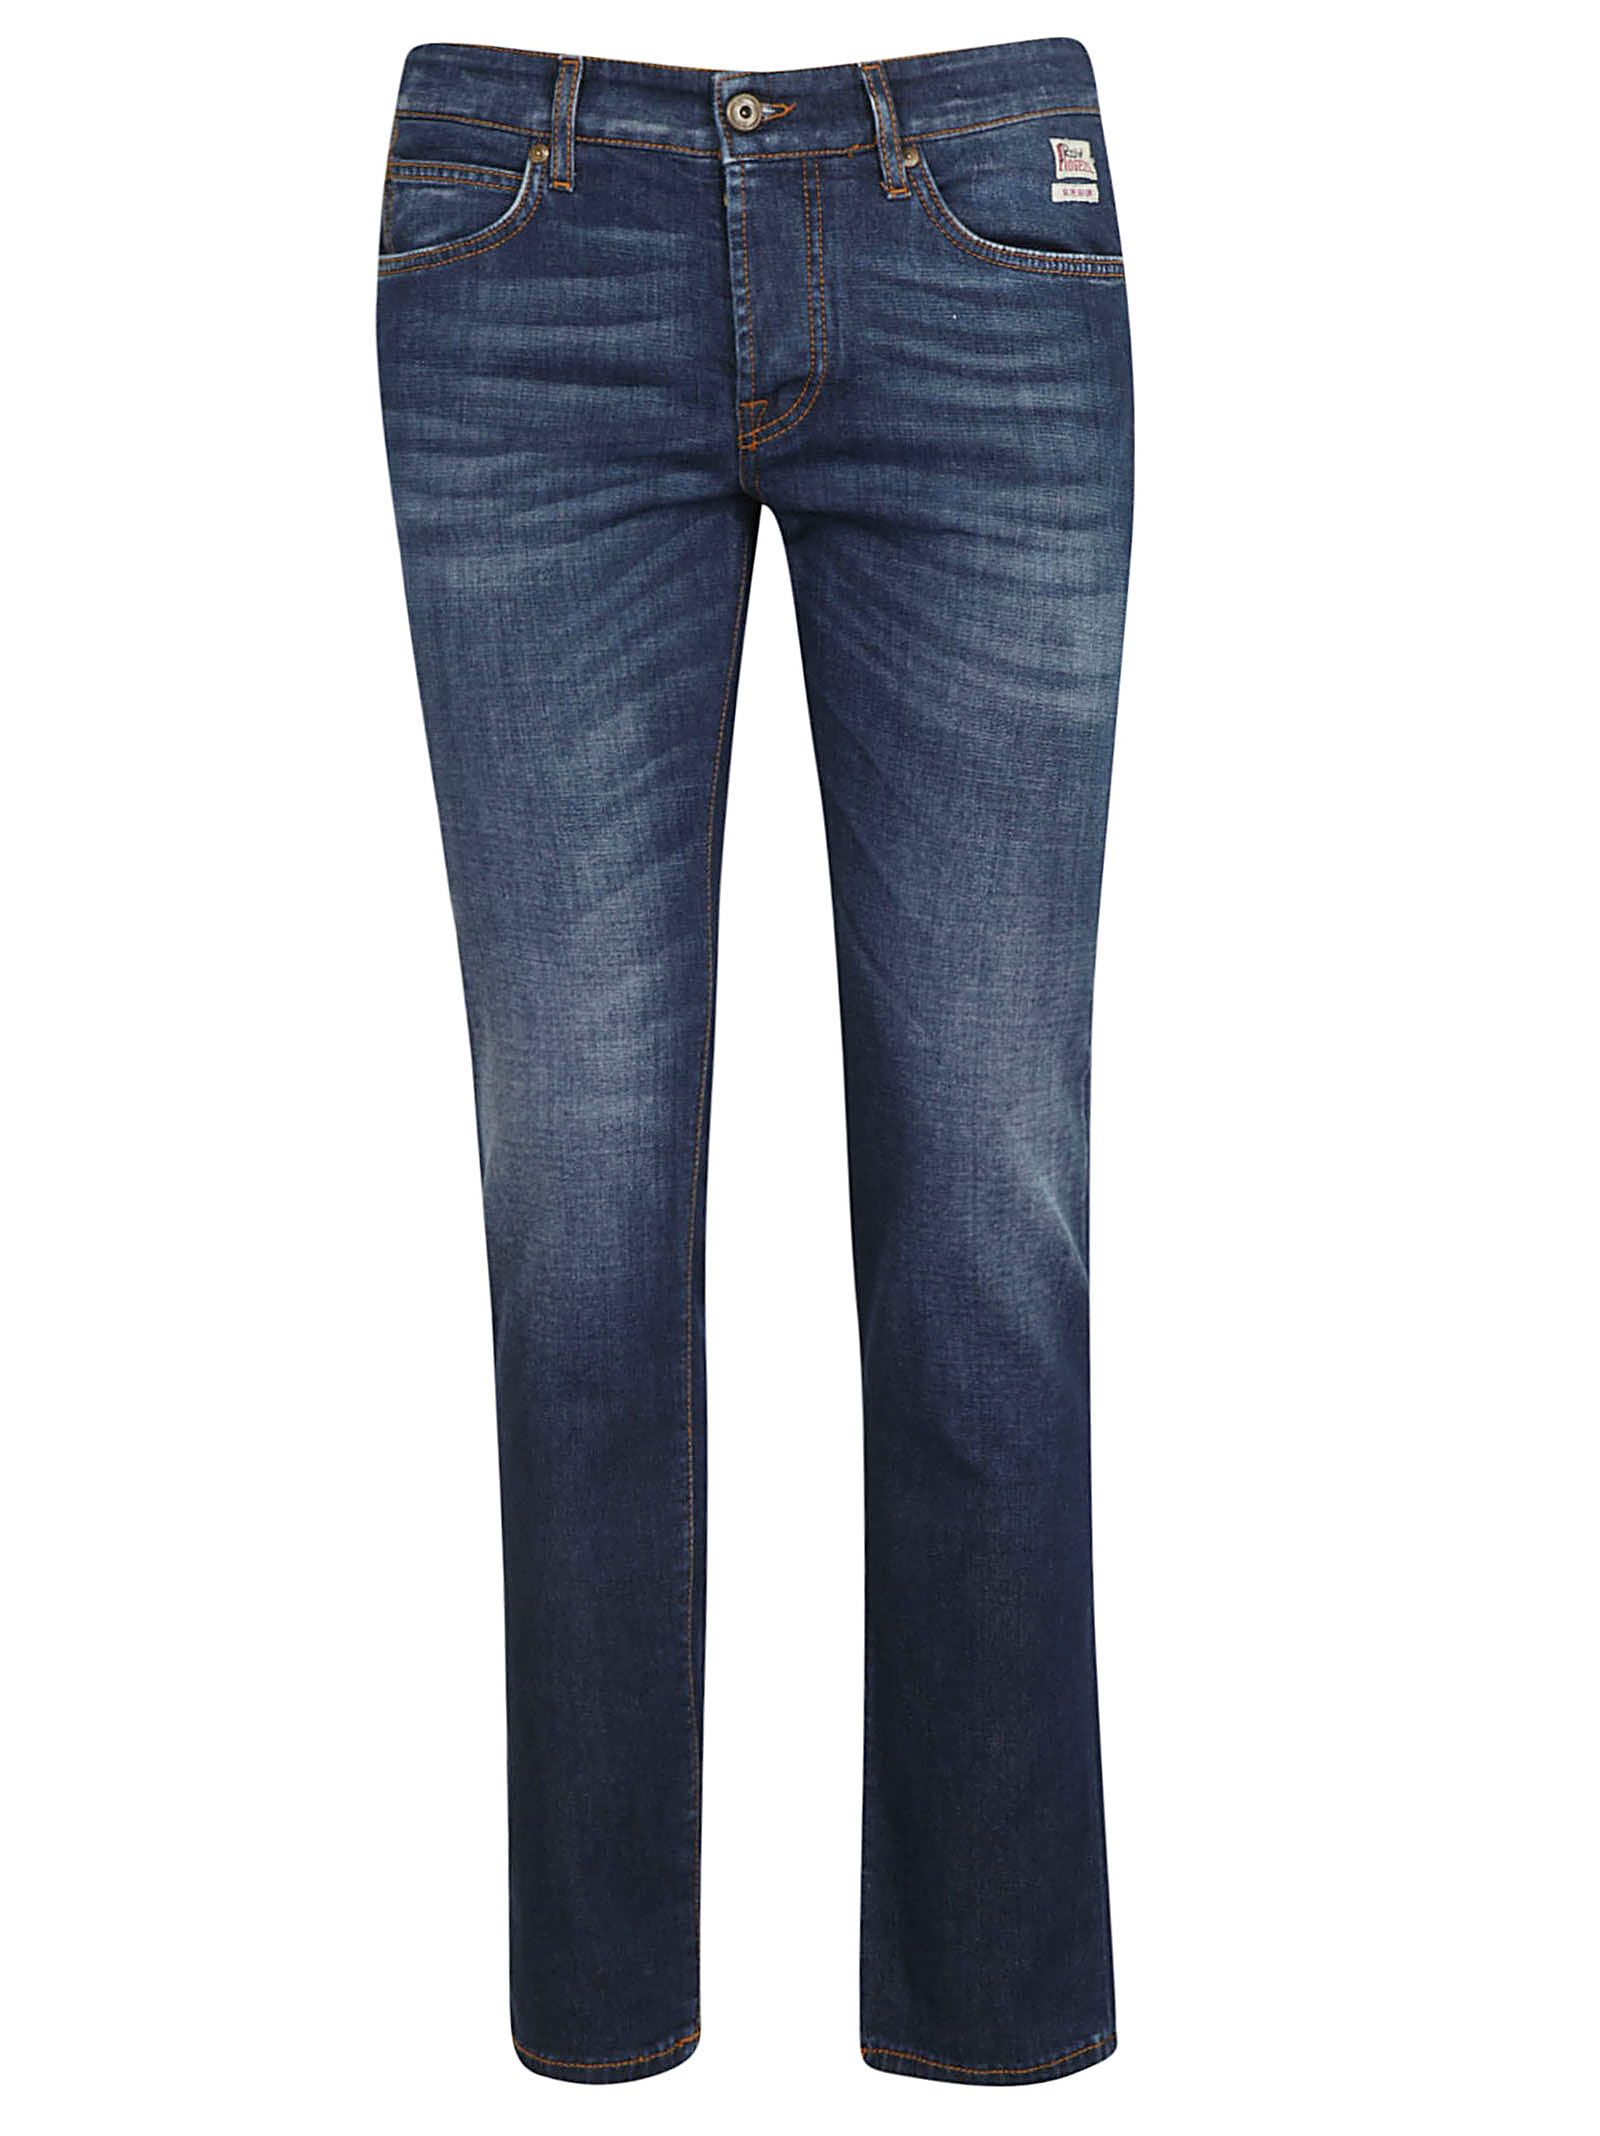 ROY ROGERS Superior Jeans in Medio